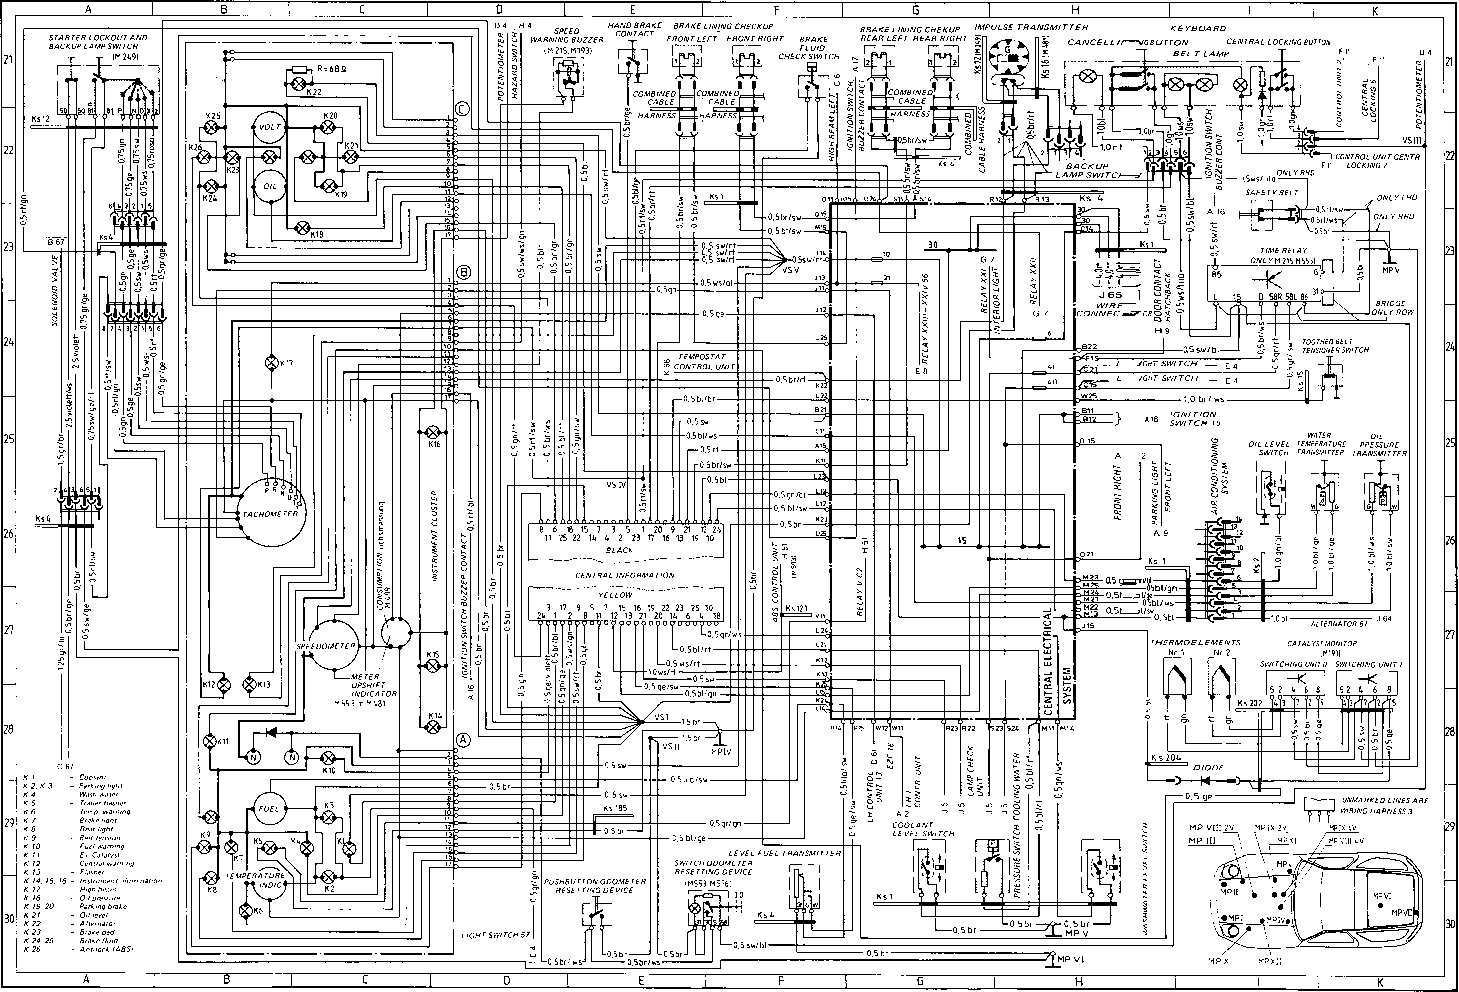 Stunning Porsche 996 Wiring Diagrams Contemporary - Electrical and ...